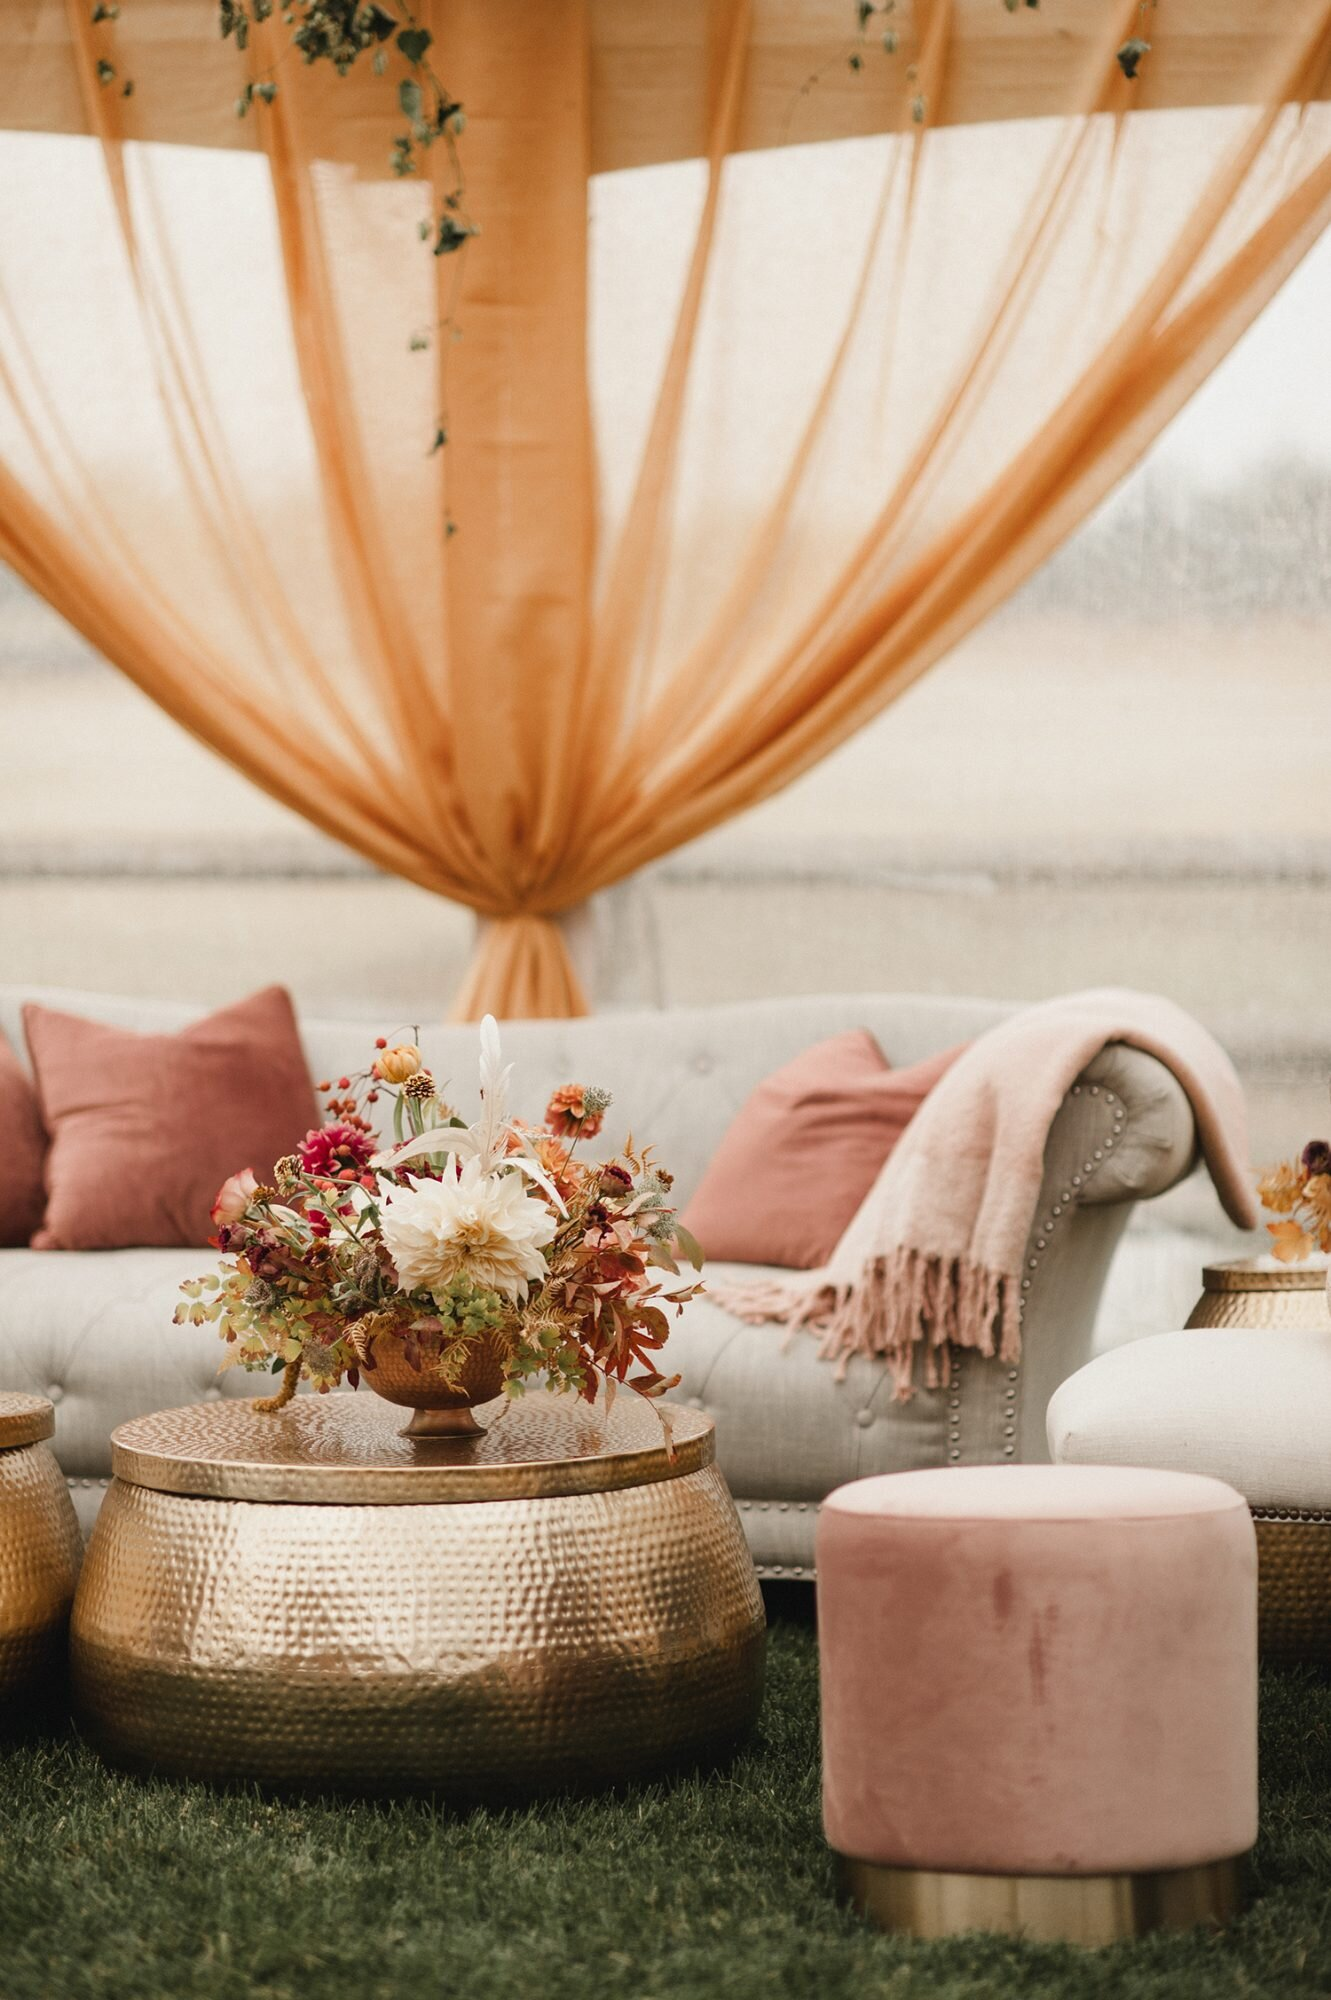 32 Wedding Lounge Ideas Your Guests Can Cozy Up To | Martha Stewart